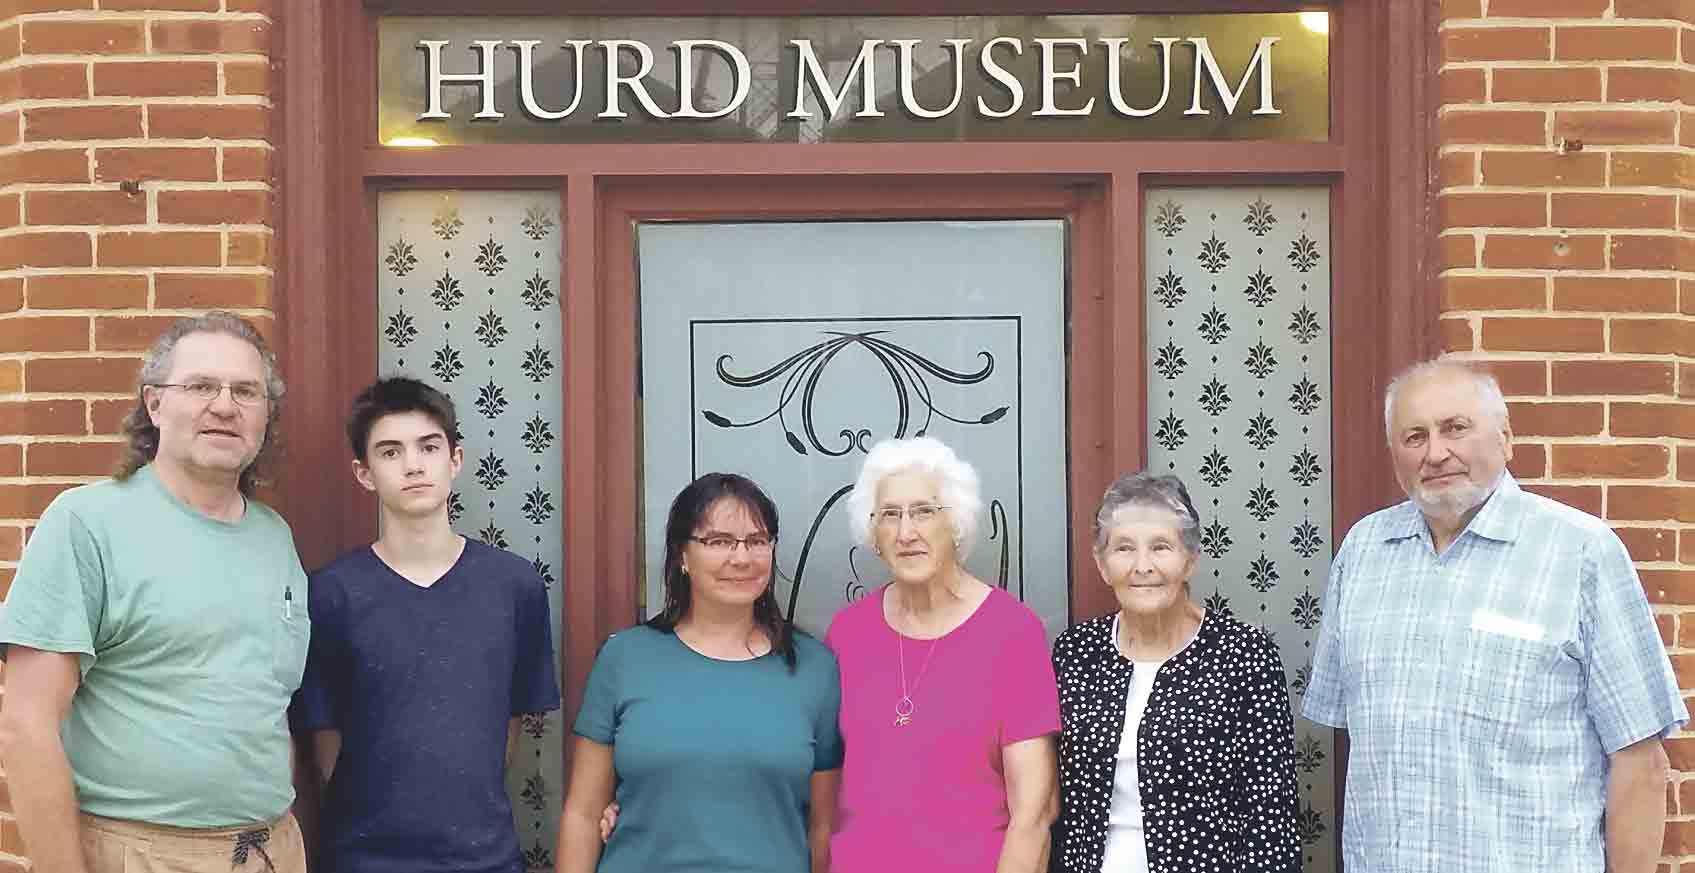 Hawkeye's Hurd Museum hosted the Schlegel family on Sunday, Aug. 6, as the German visitors conducted further research on their family's connections to Fayette County. (L-r) Matthias Schlegel, Cosimo Schlegel, Elke Schlegel, Hurd Museum volunteers Evelyn Schultz and Shirley Gibbs,...